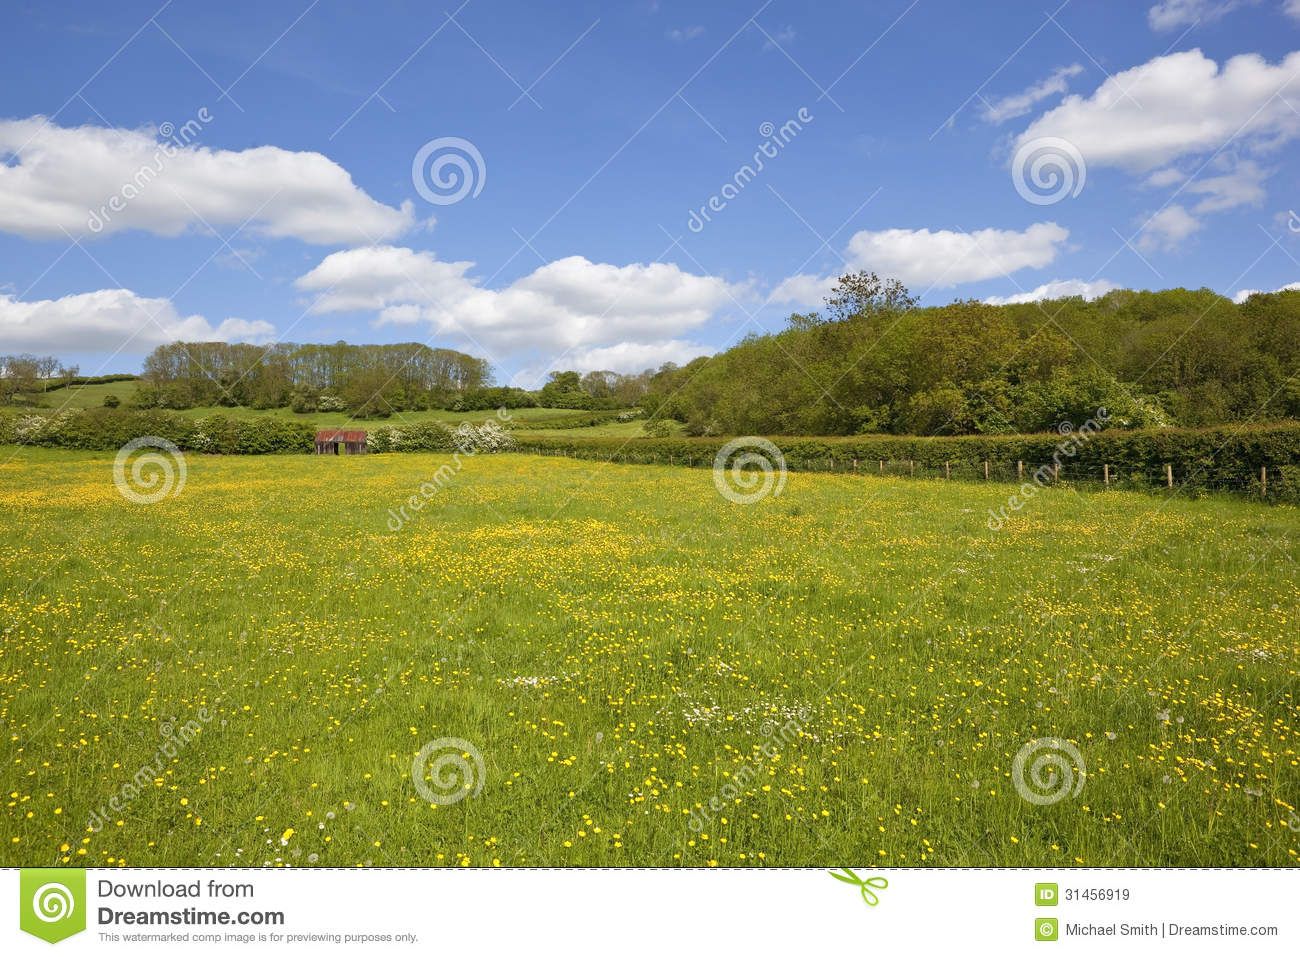 rusty animal shelter in a buttercup meadow amongst patchwork farm ...